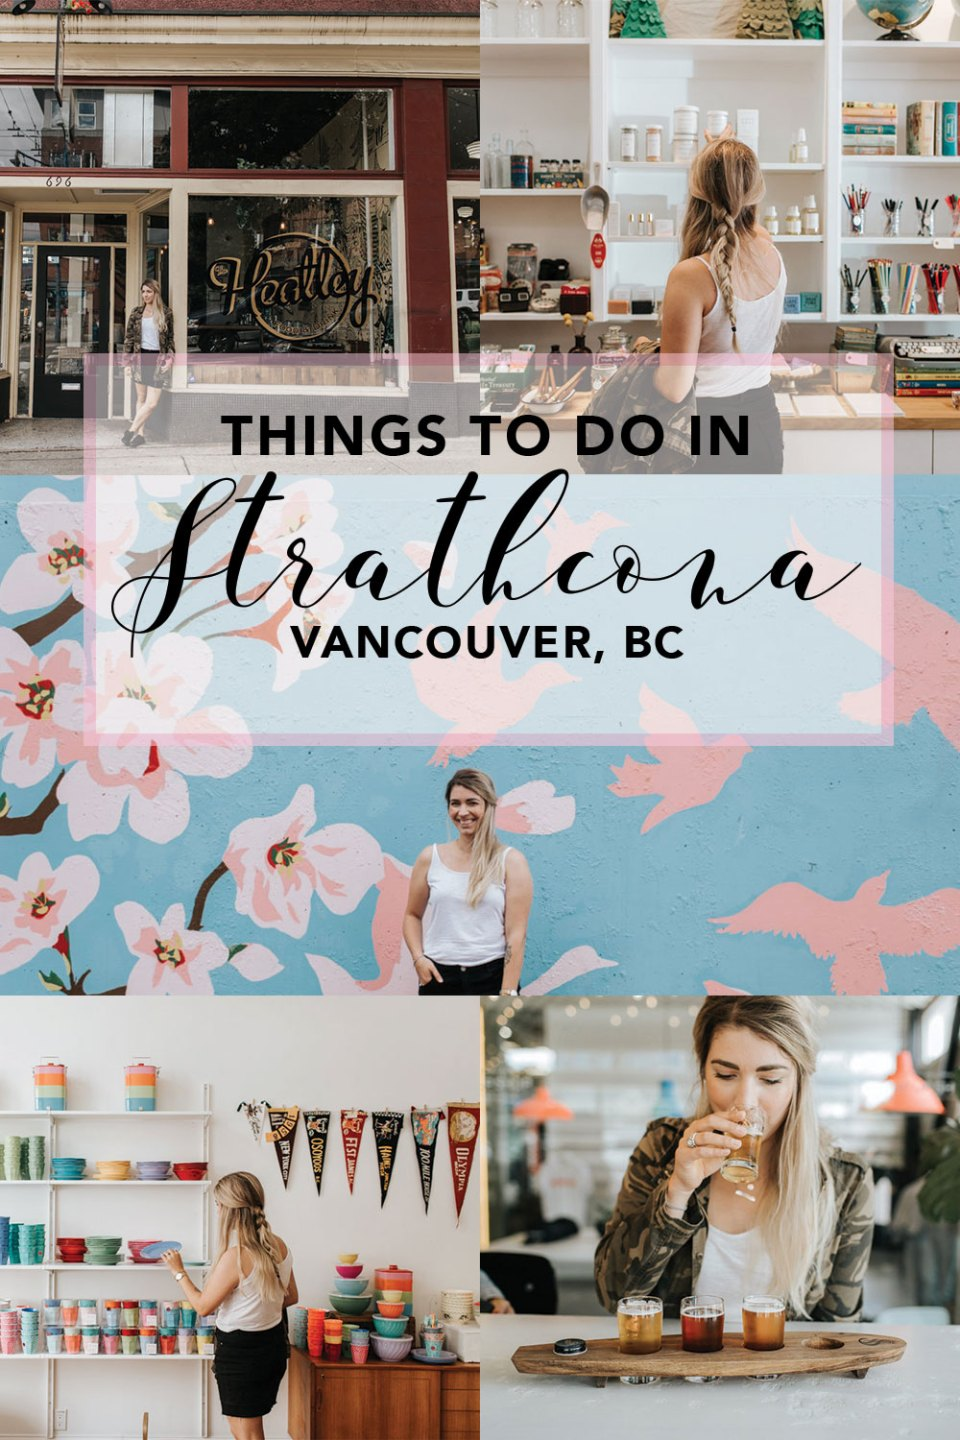 Explore Strathcona | Vancouver BC // Things to do and places to see within the neighbourhood and along East Hastings Street. Strathcona Brewing, London Fields Shoppe, Cheese, and more! Photo by Juliechristinephotography.com